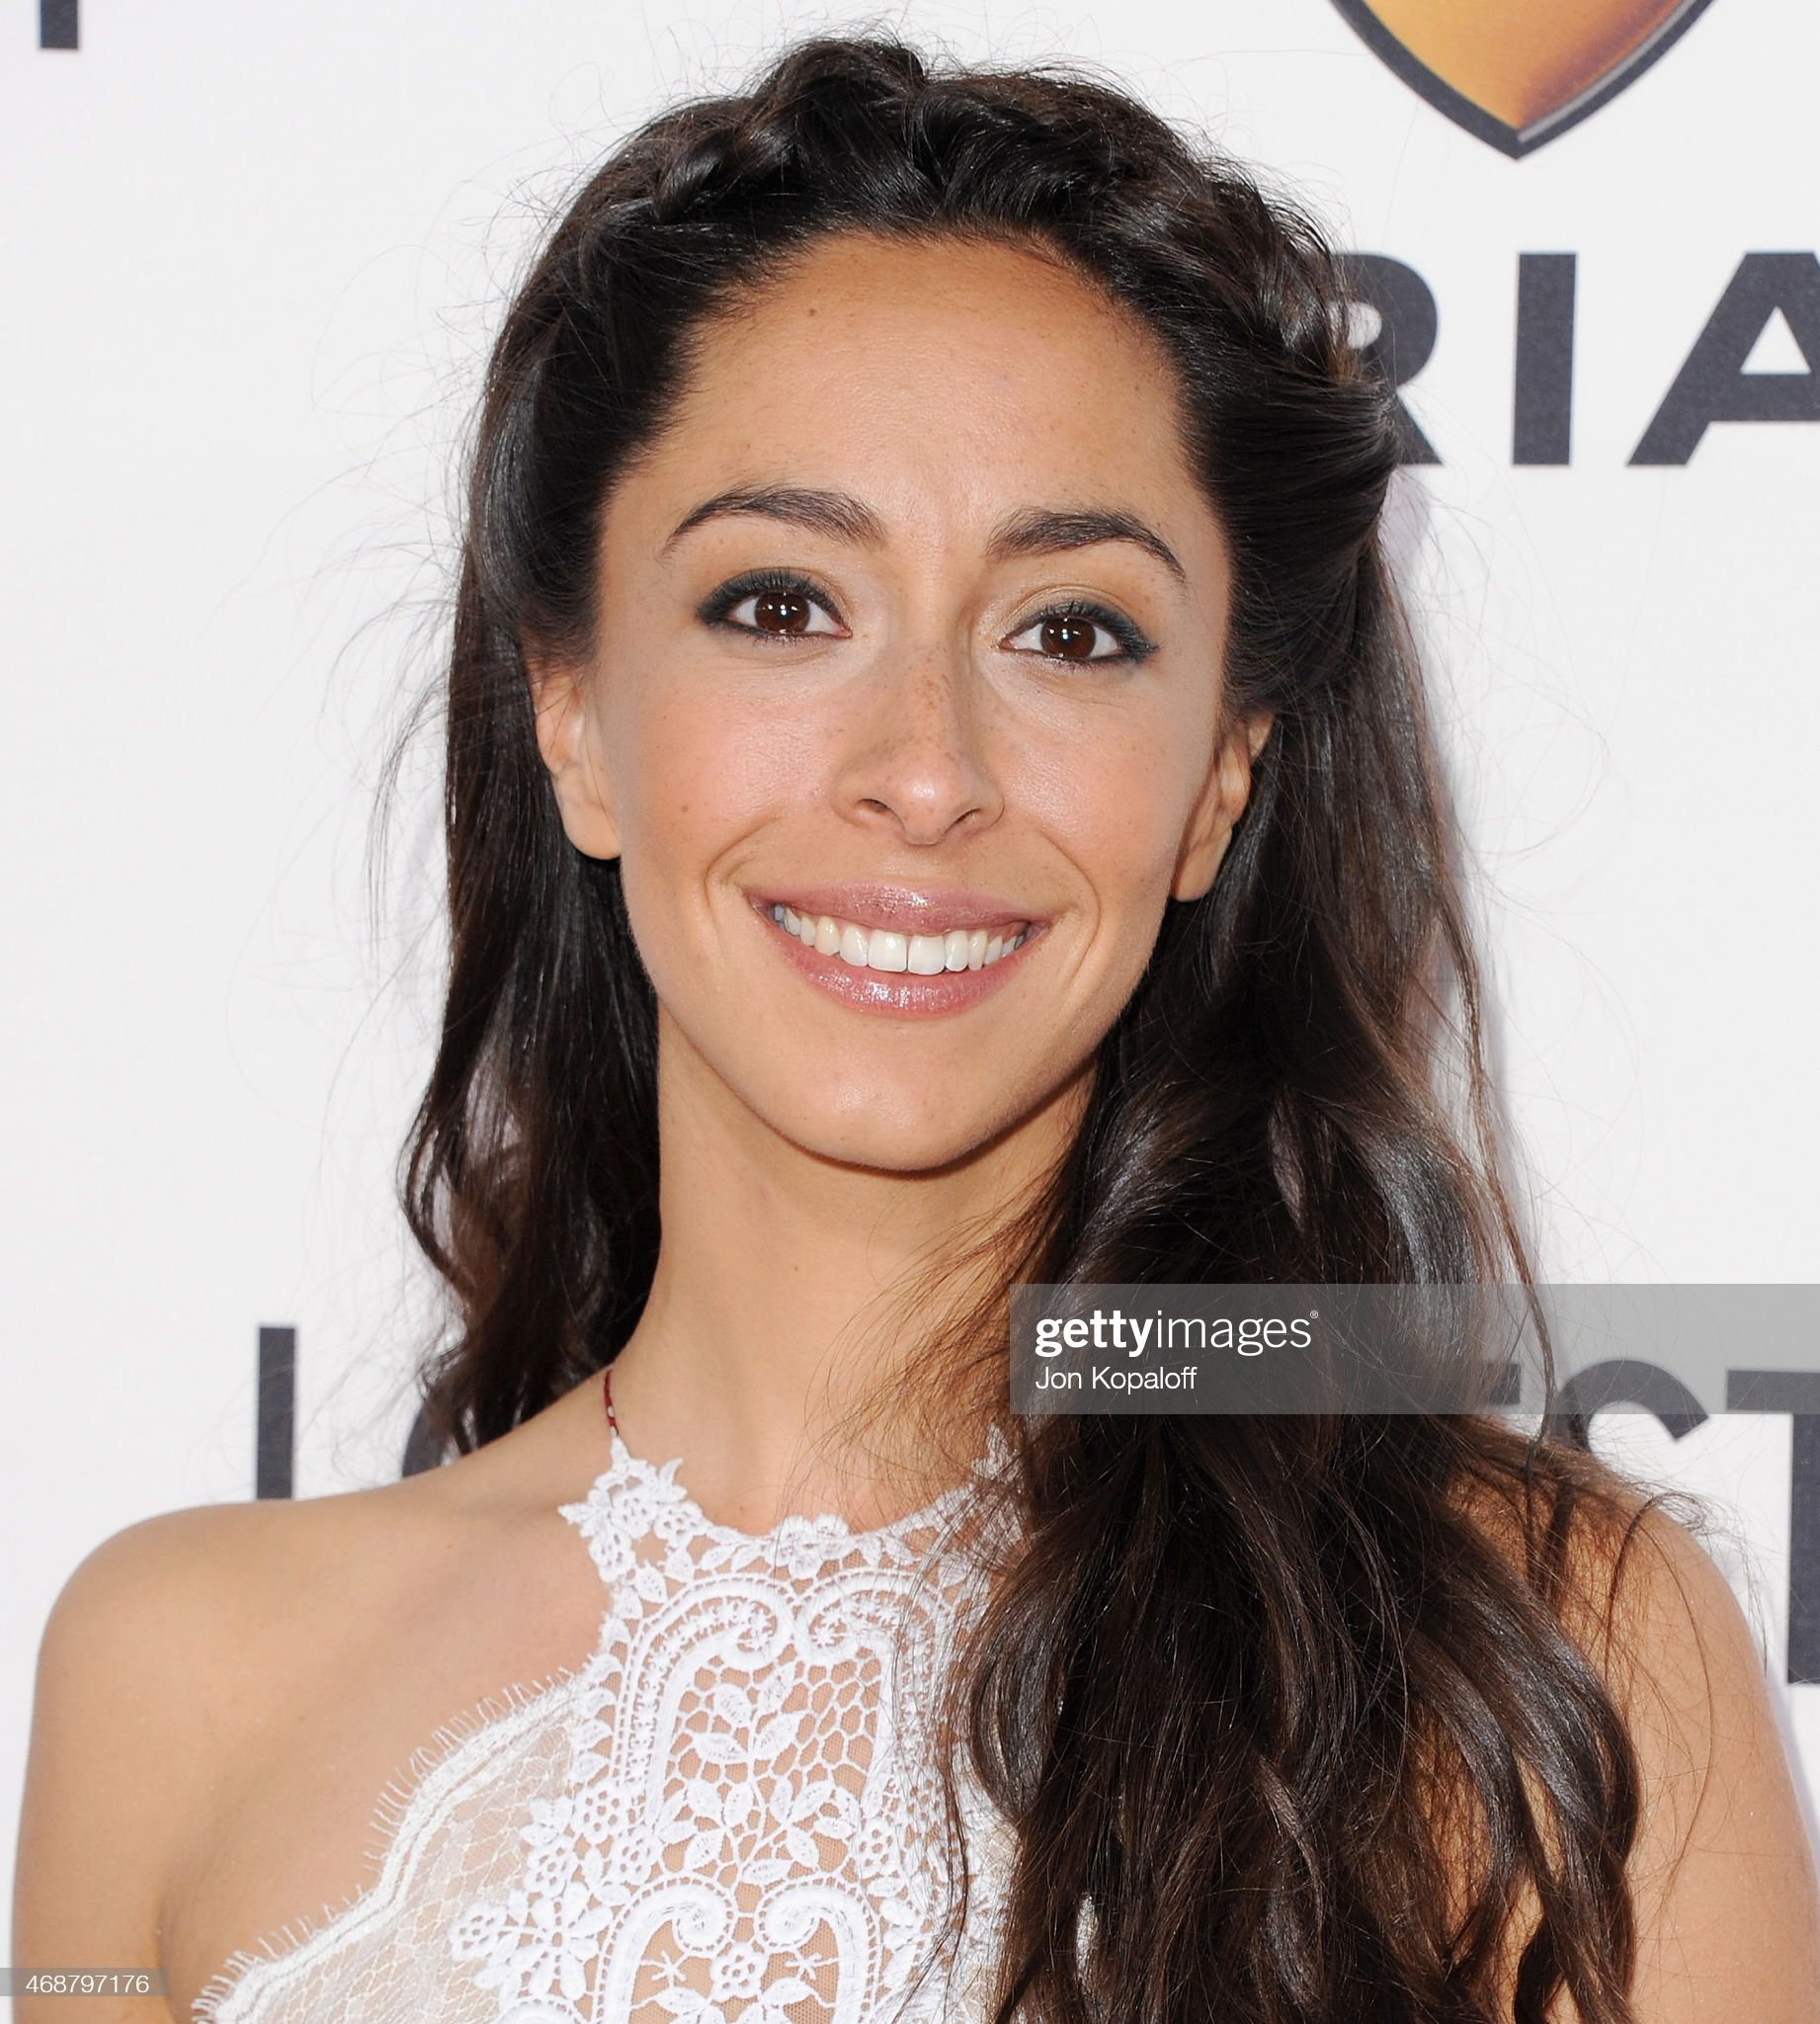 Top 80 Famosas Foroalturas - Página 2 Actress-oona-chaplin-arrives-at-the-los-angeles-premiere-the-longest-picture-id468797176?s=2048x2048